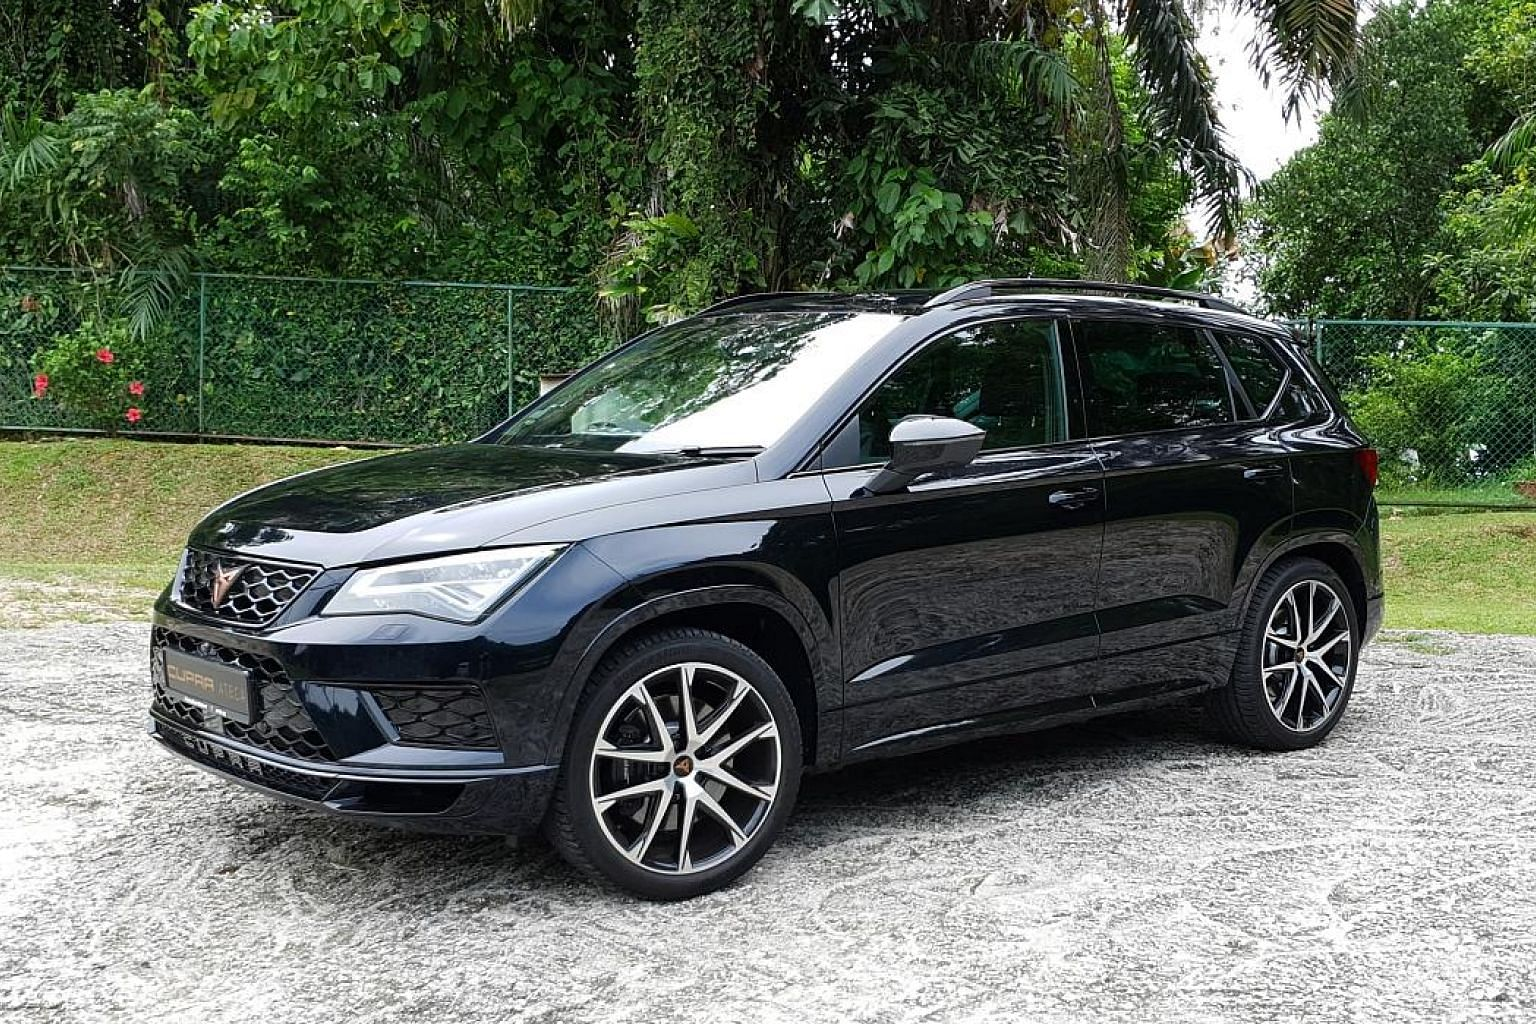 The stylish-looking Cupra Ateca has great noise insulation, a slightly firm but comfortable ride, and plenty of space for rear-seat passengers.